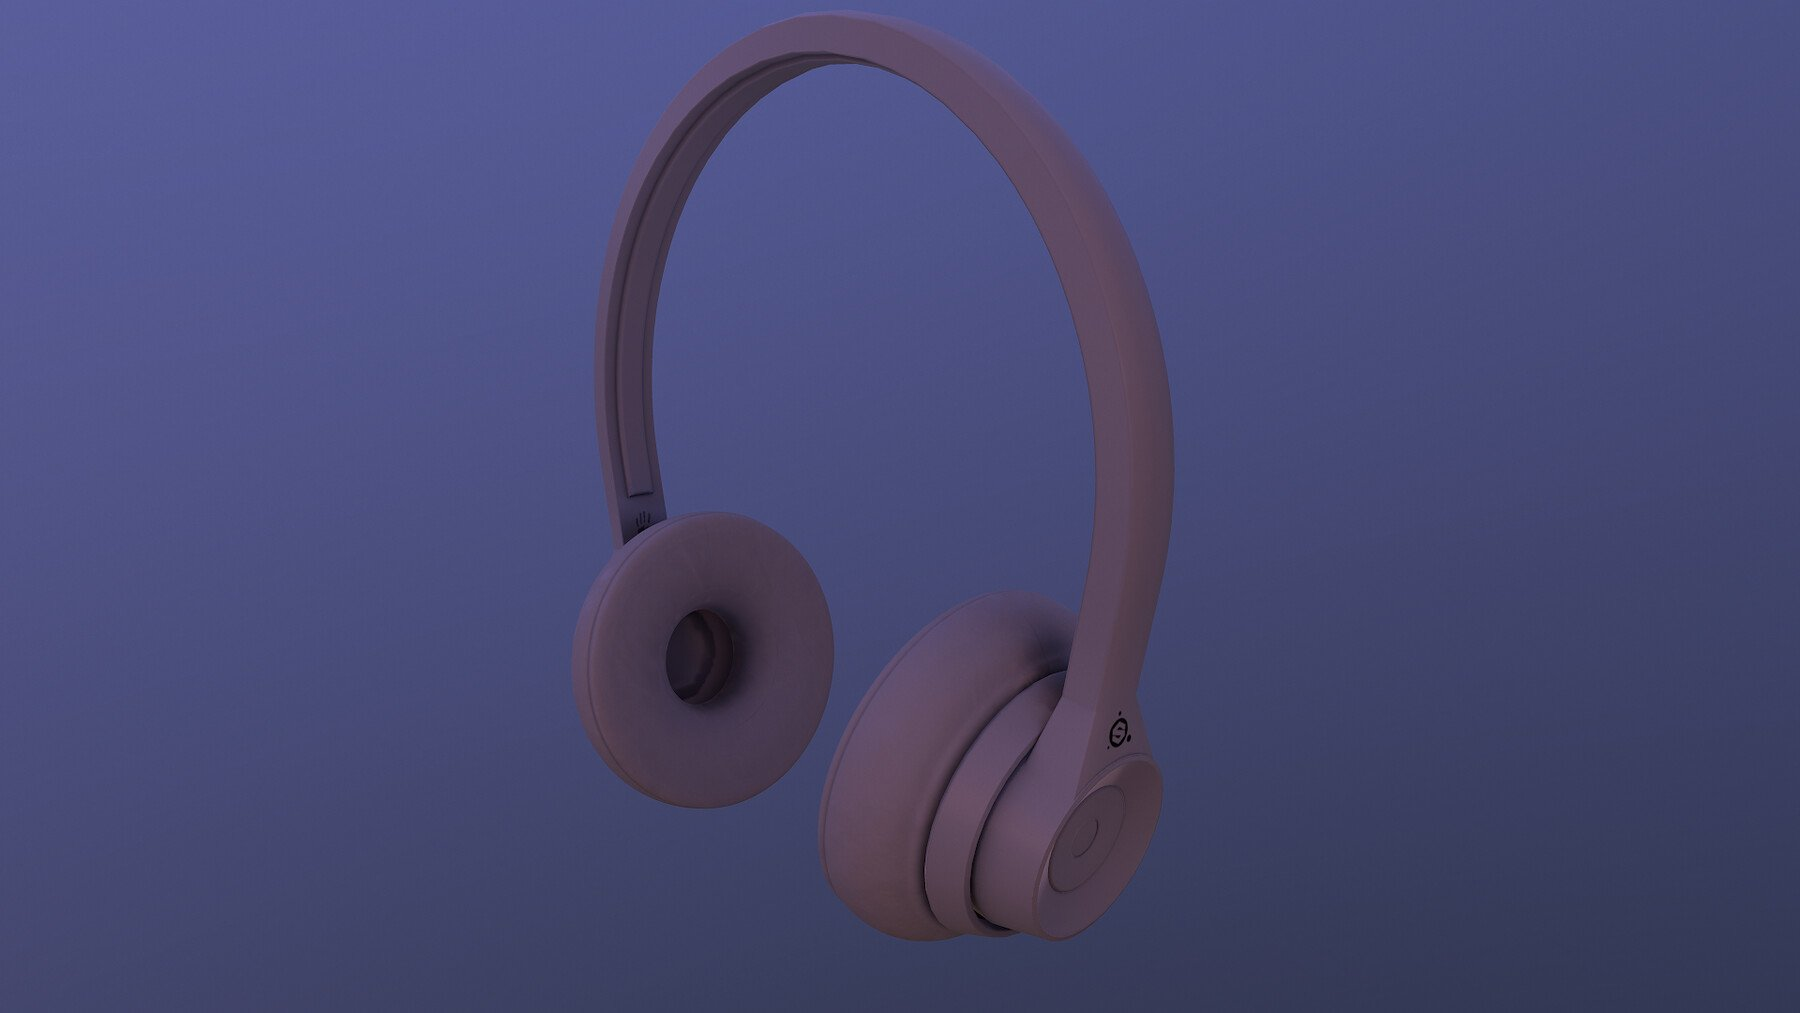 product image 15